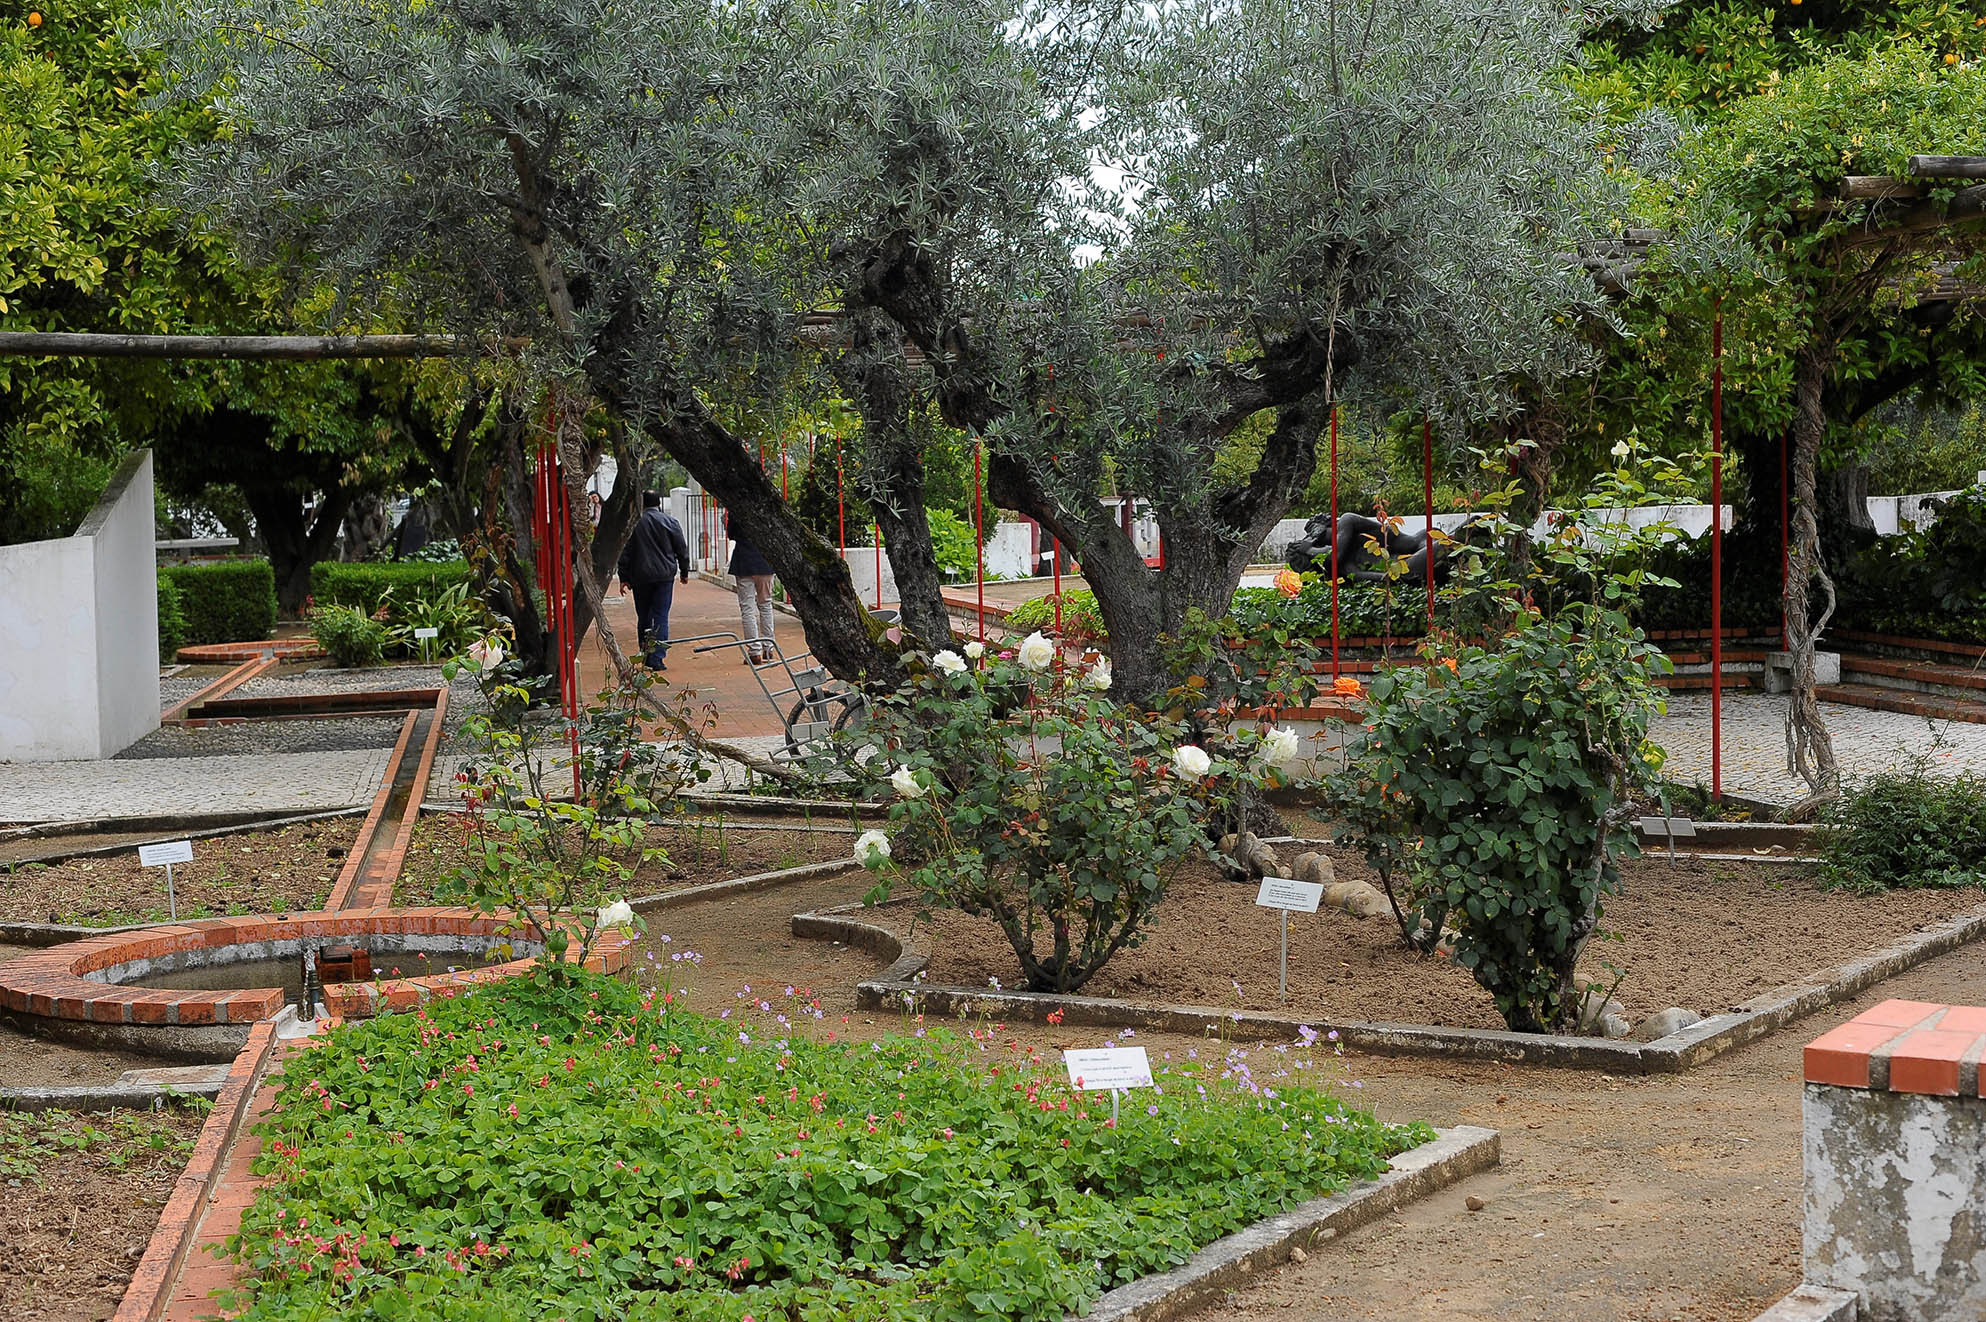 The Garden is unique. It's a living monument to Camões, it pays homage to the writer through the plants he refers to in his works